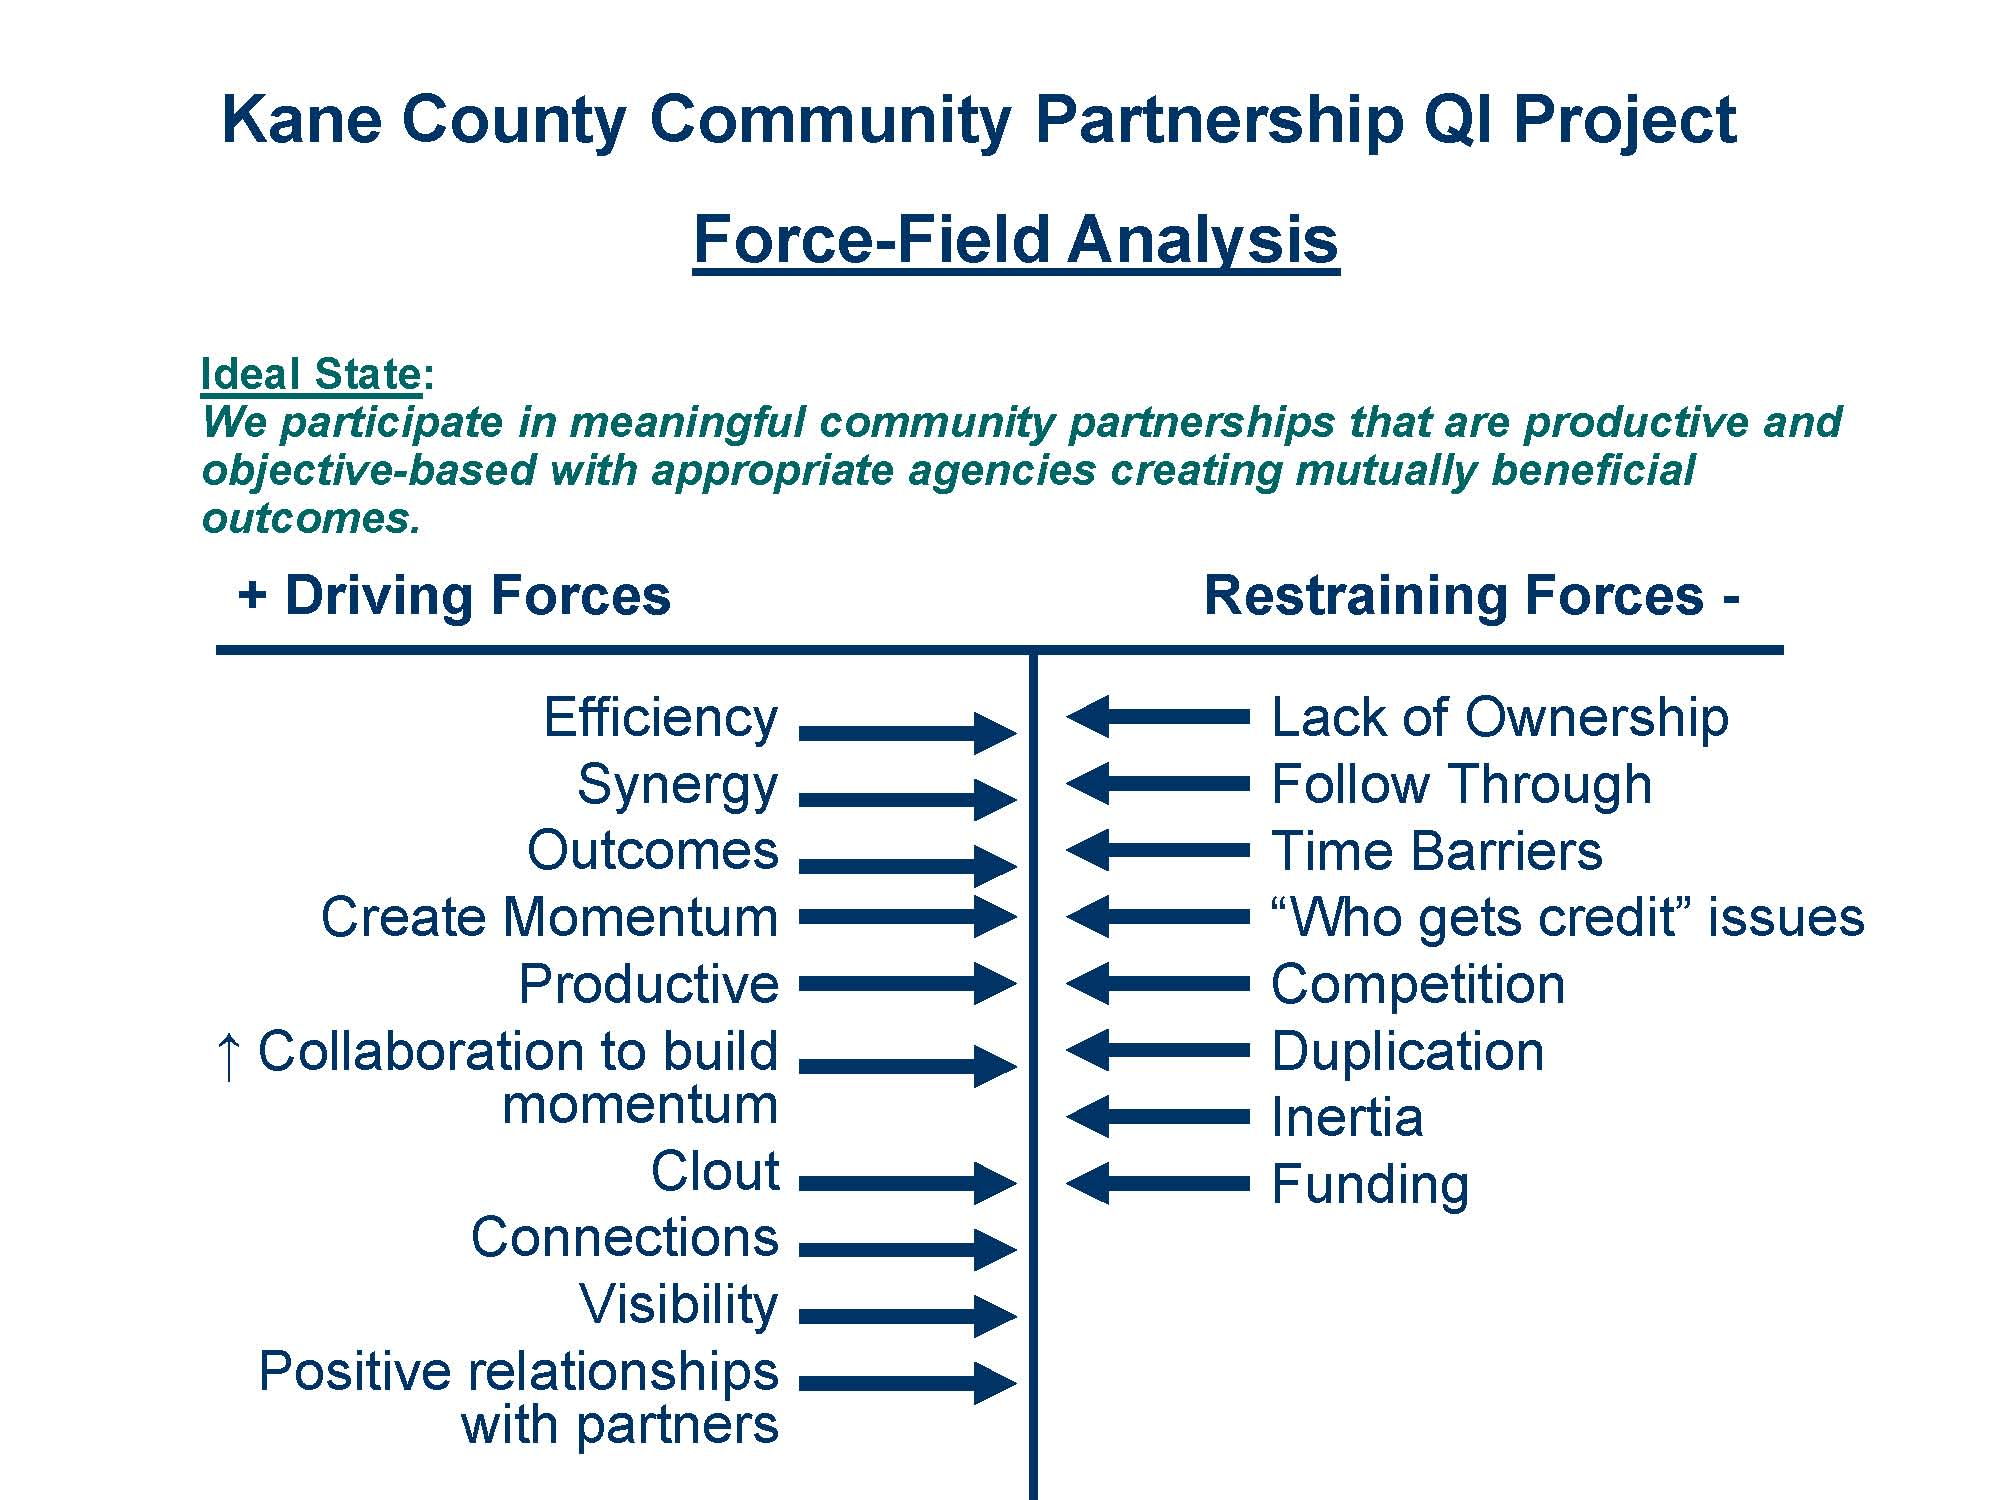 Increasing Identification Of Resources In Kane County And